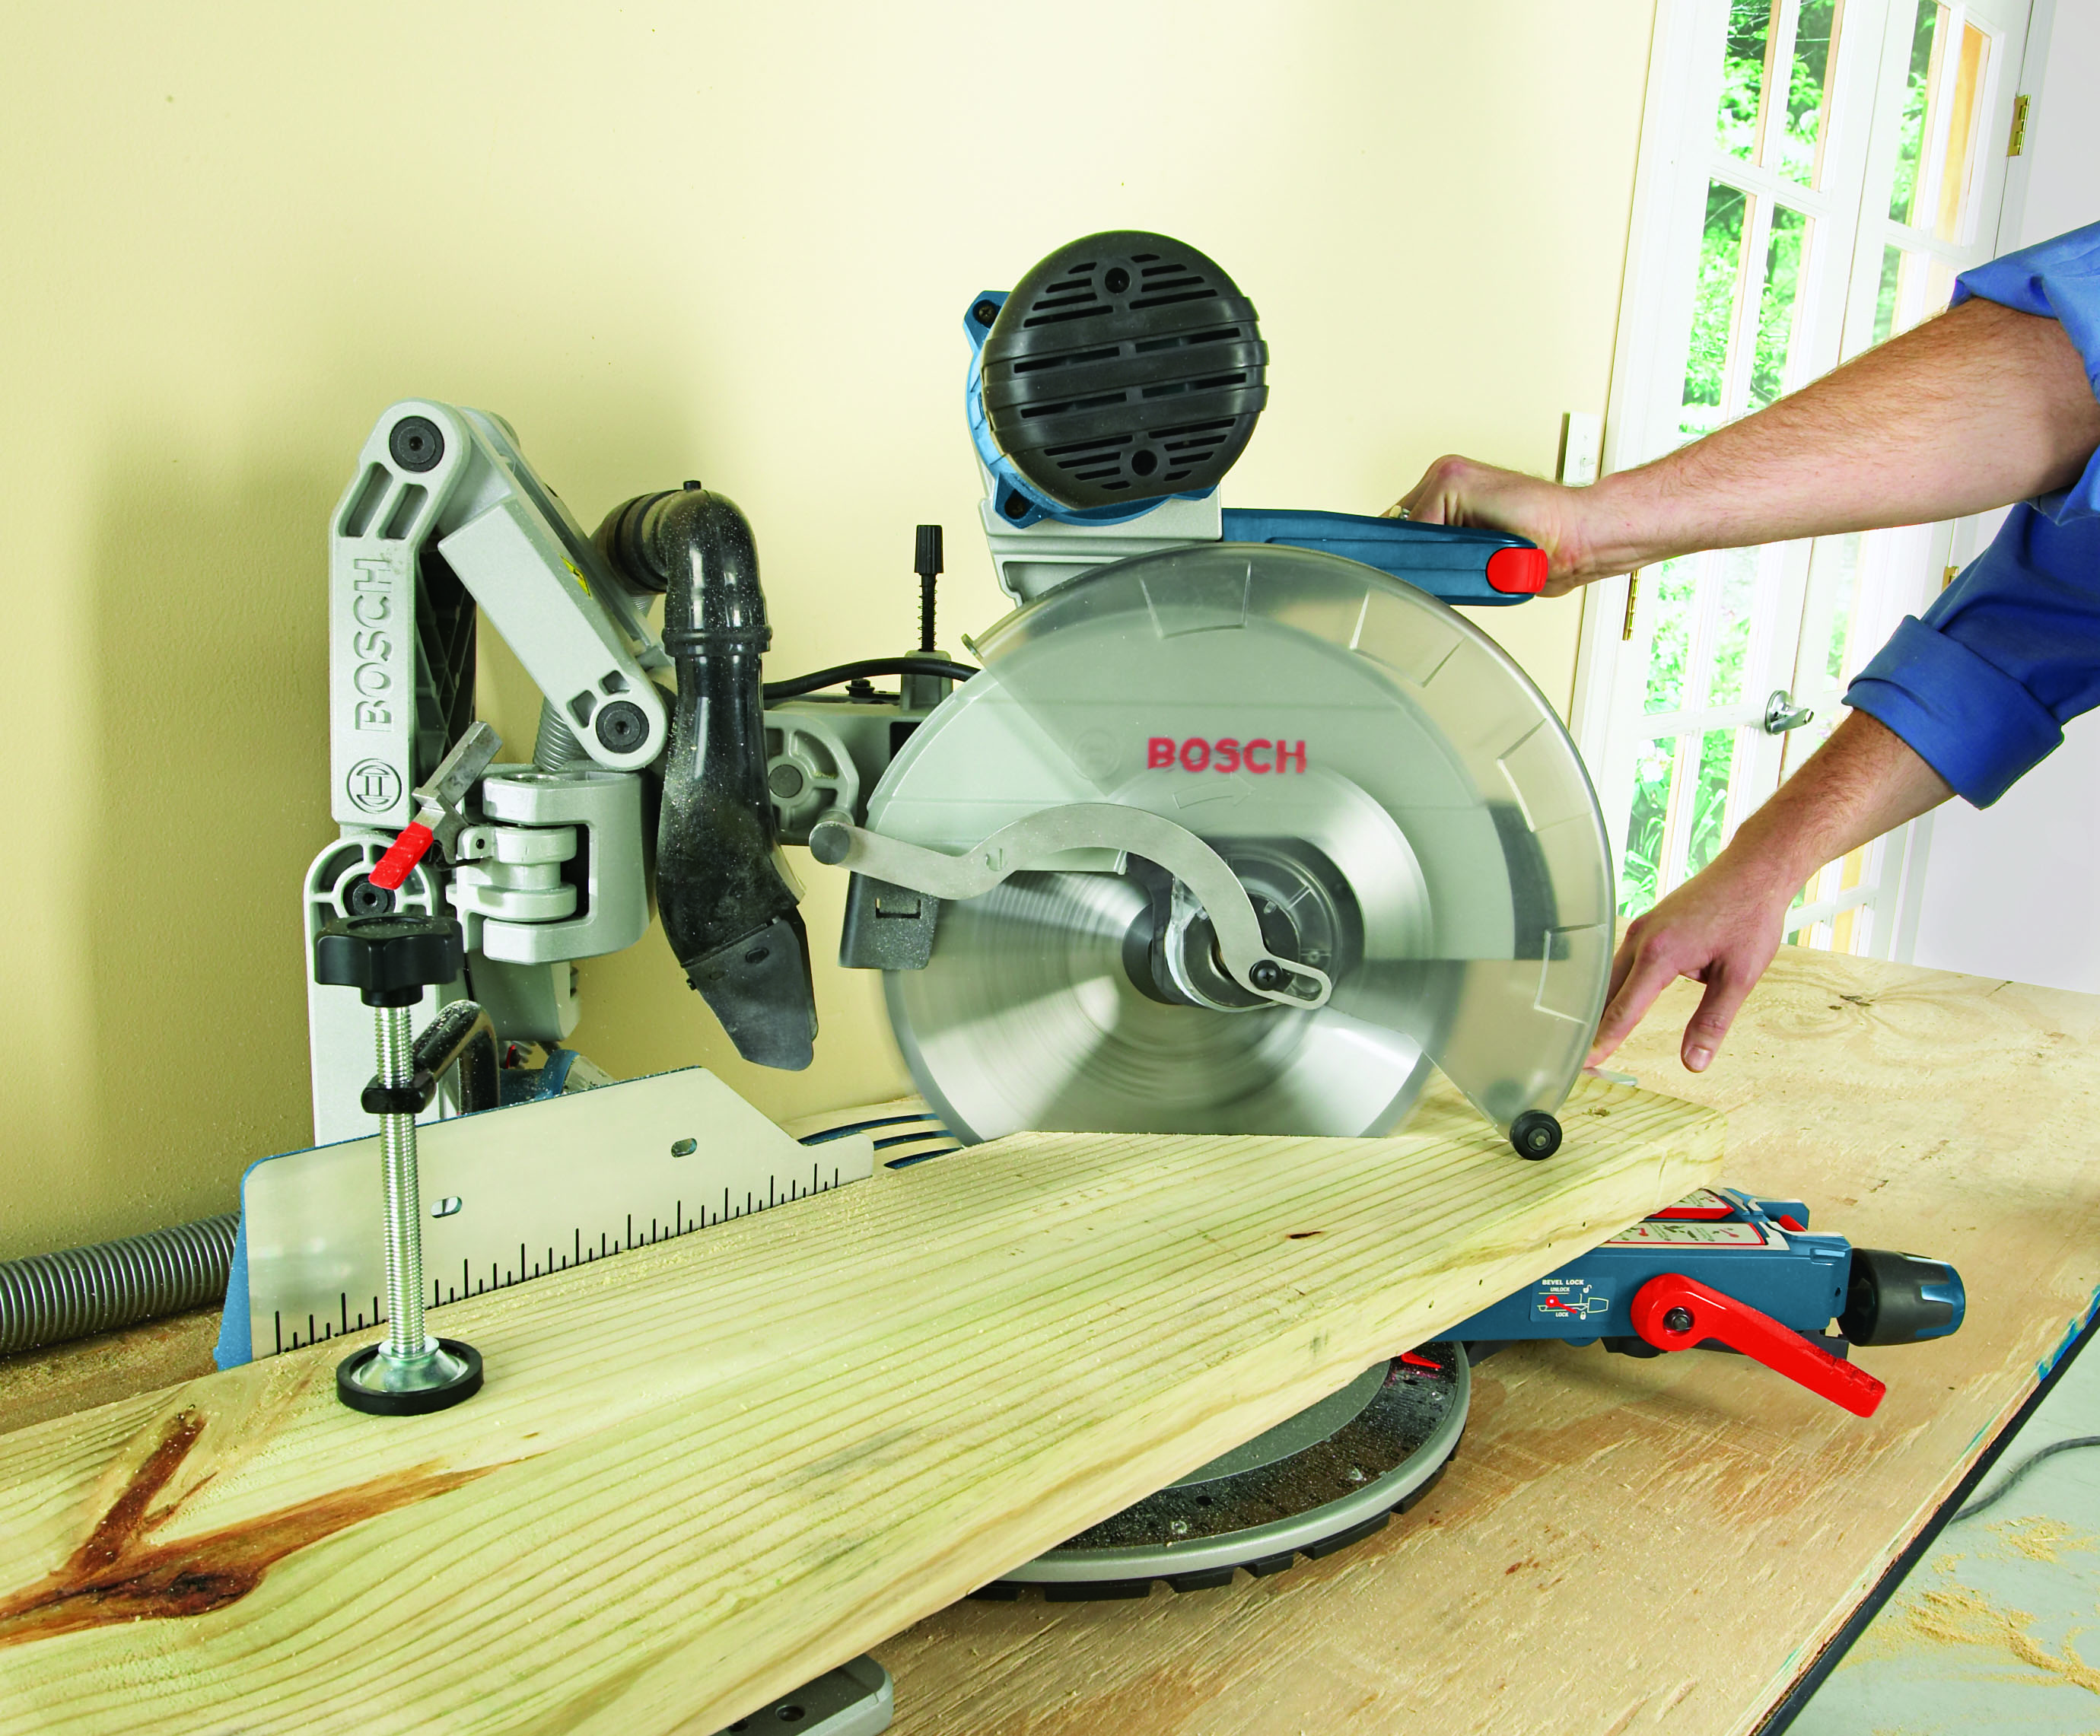 Gcm12sd 12 In Dual Bevel Glide Miter Saw Bosch Power